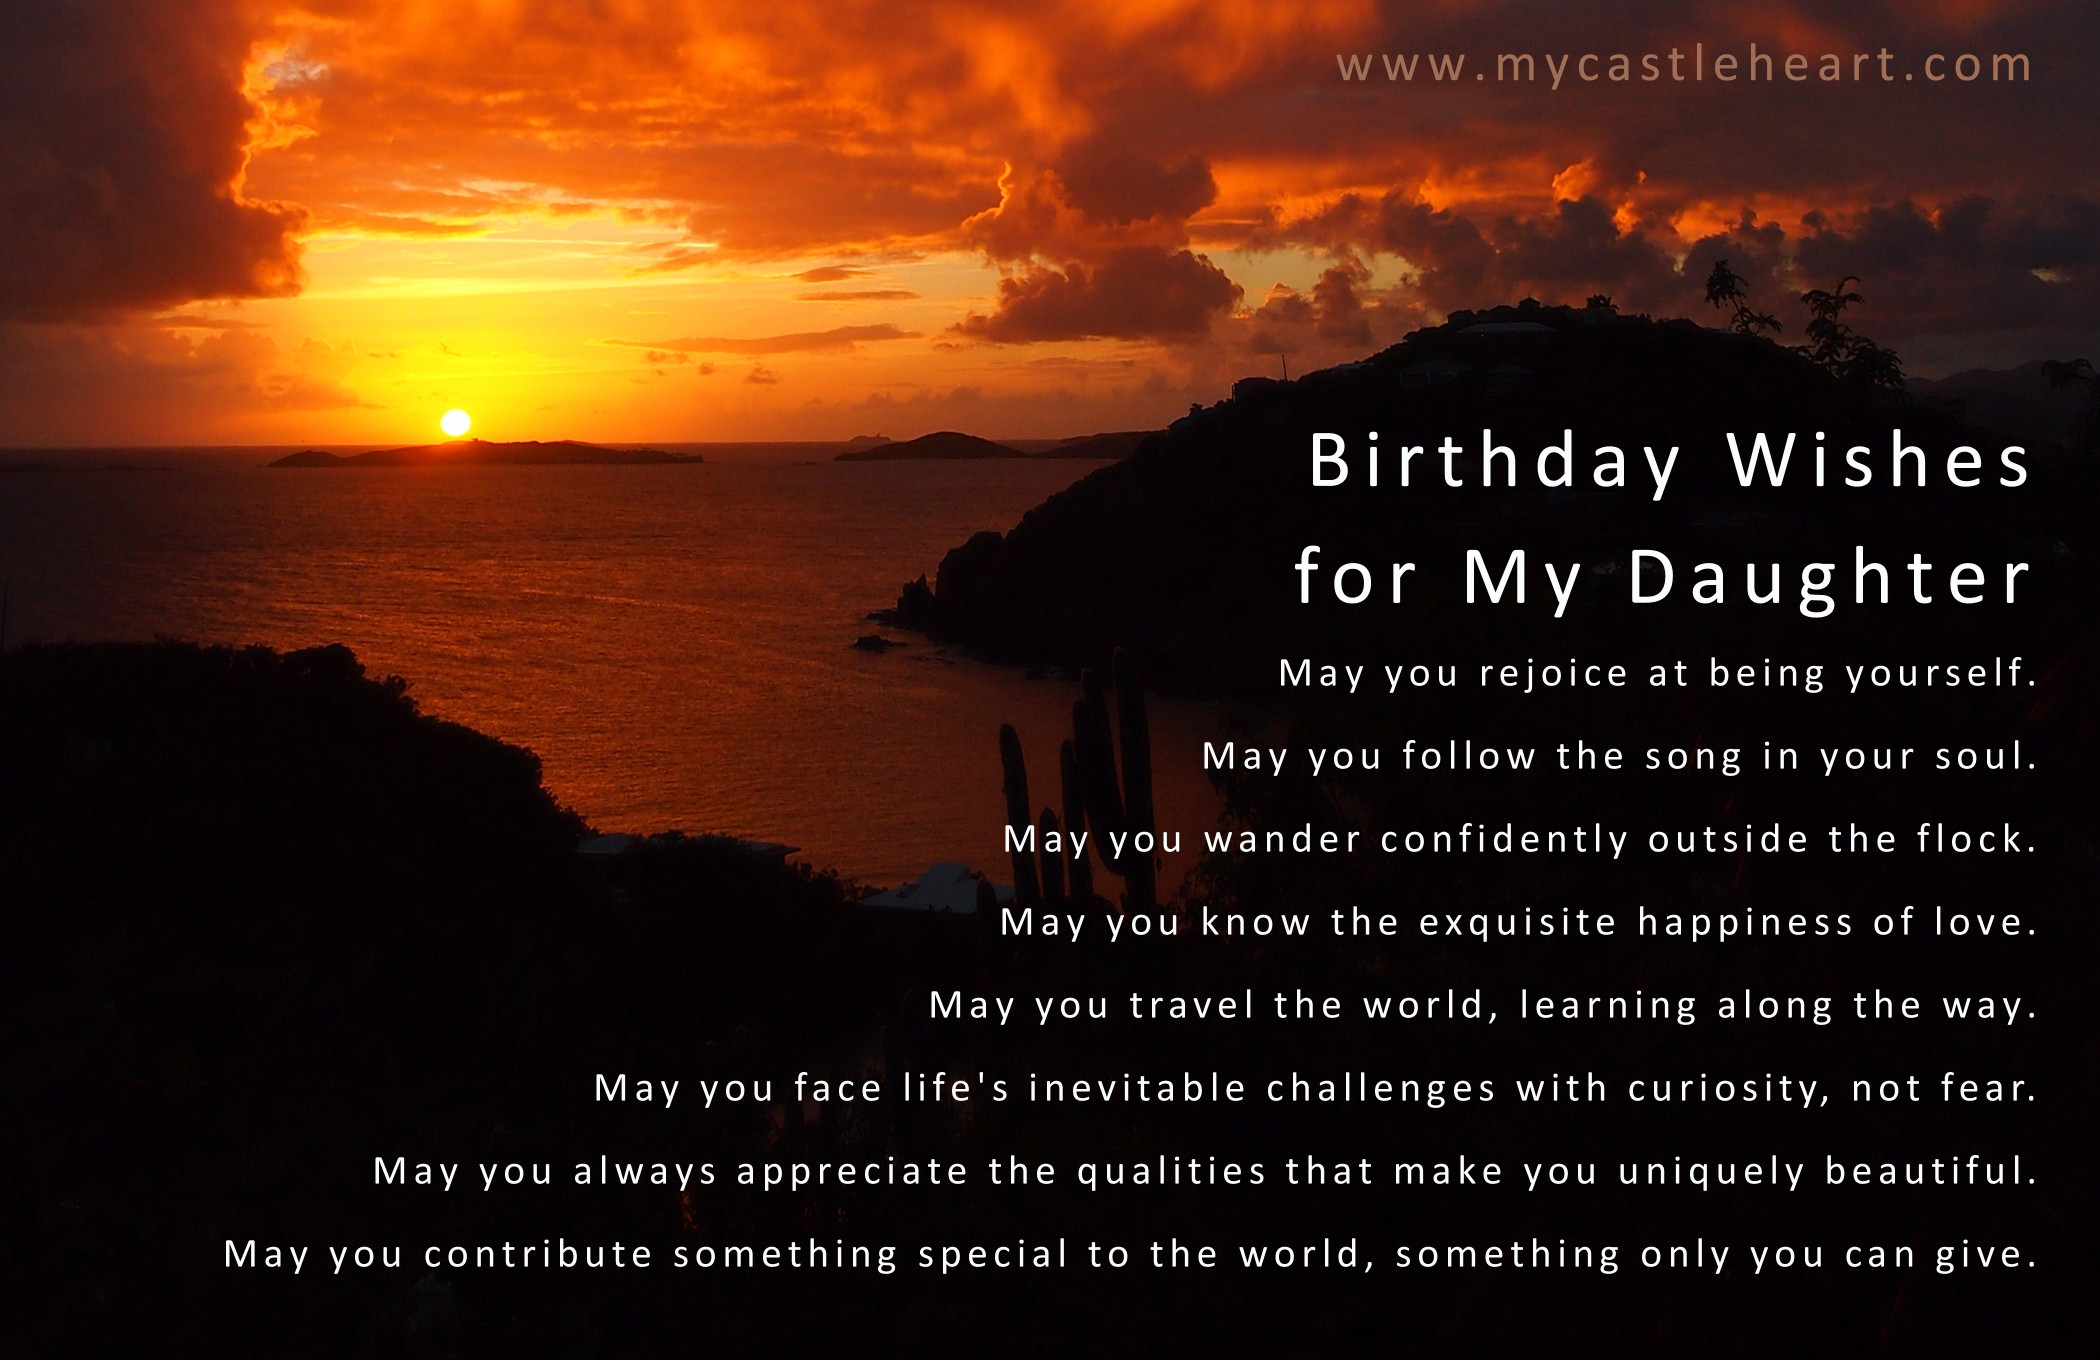 Best ideas about Birthday Wishes For Adult Daughter . Save or Pin Birthday Wishes for My Daughter Now.